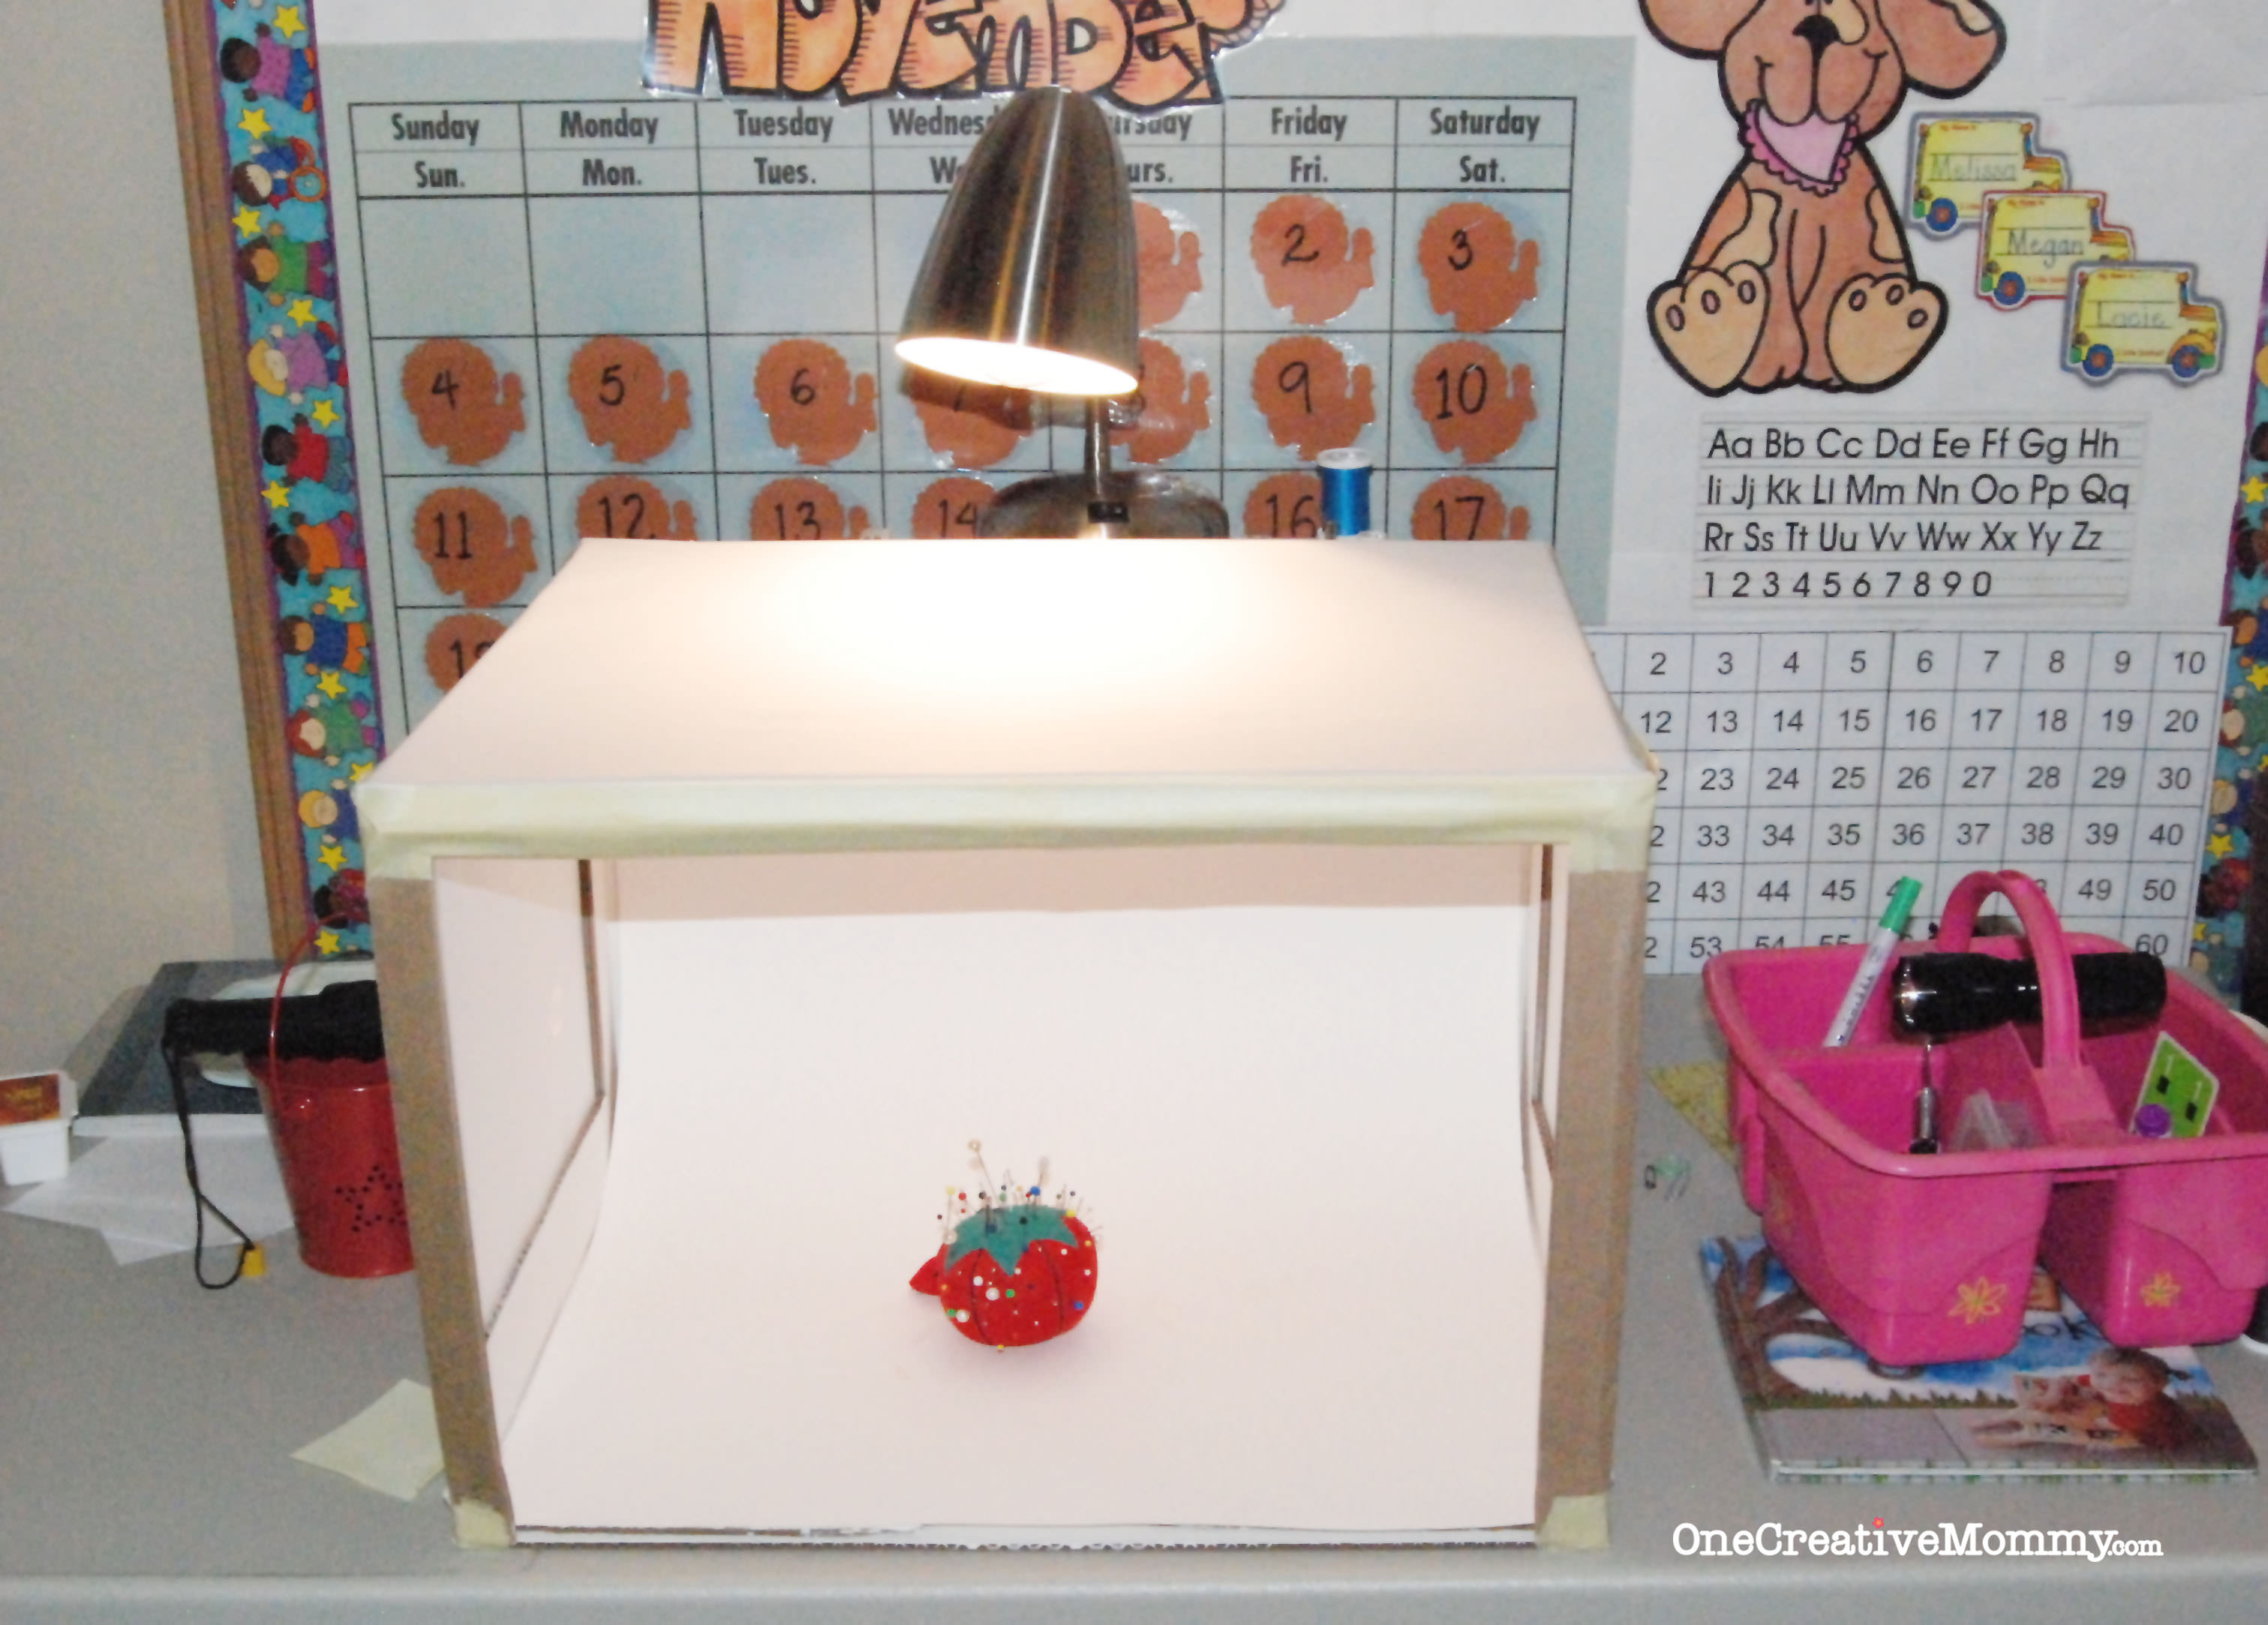 DIY Lightbox Tutorial on OneCreativeMommy.com {This is the setup}